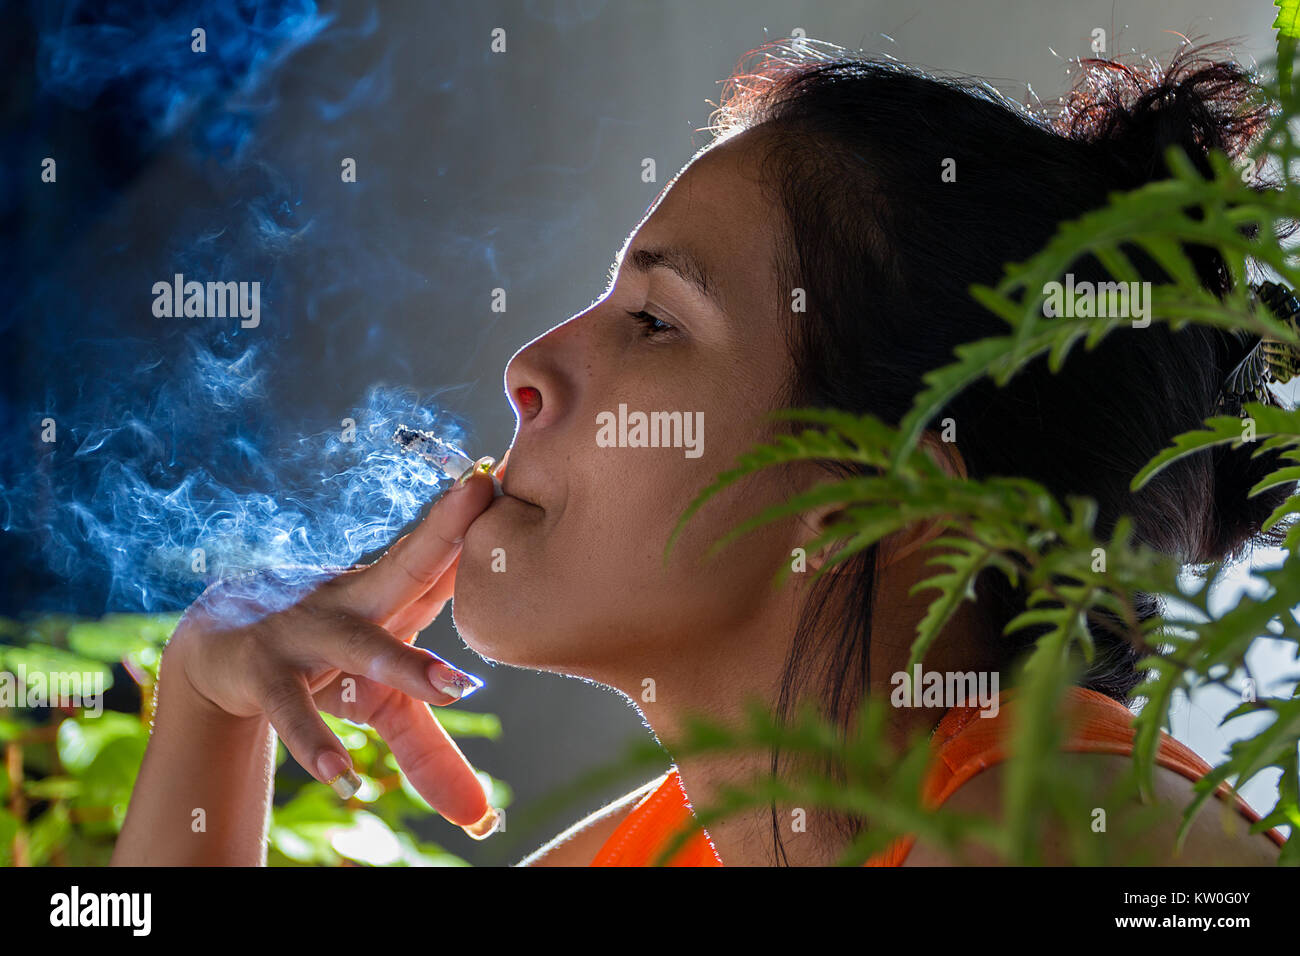 A latin woman smoking, holding a cigarette with her finger and her mouth - Stock Image